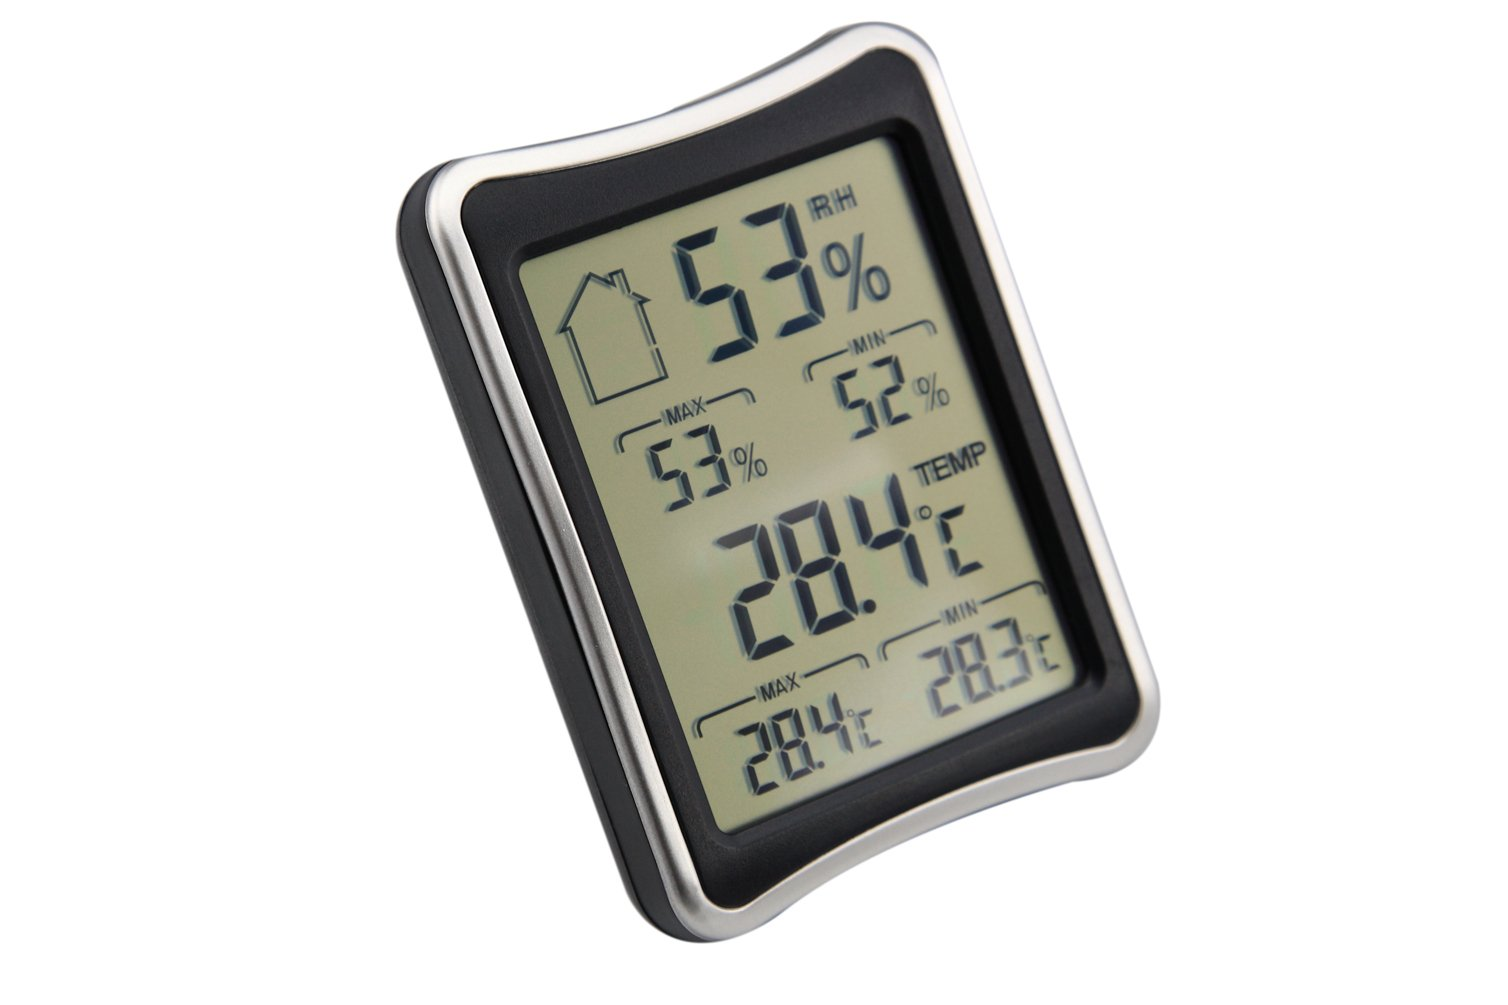 AMTAST Digital LCD Display Thermometer and Hygrometer Gauge, Light Weight and Portable by AMTAST